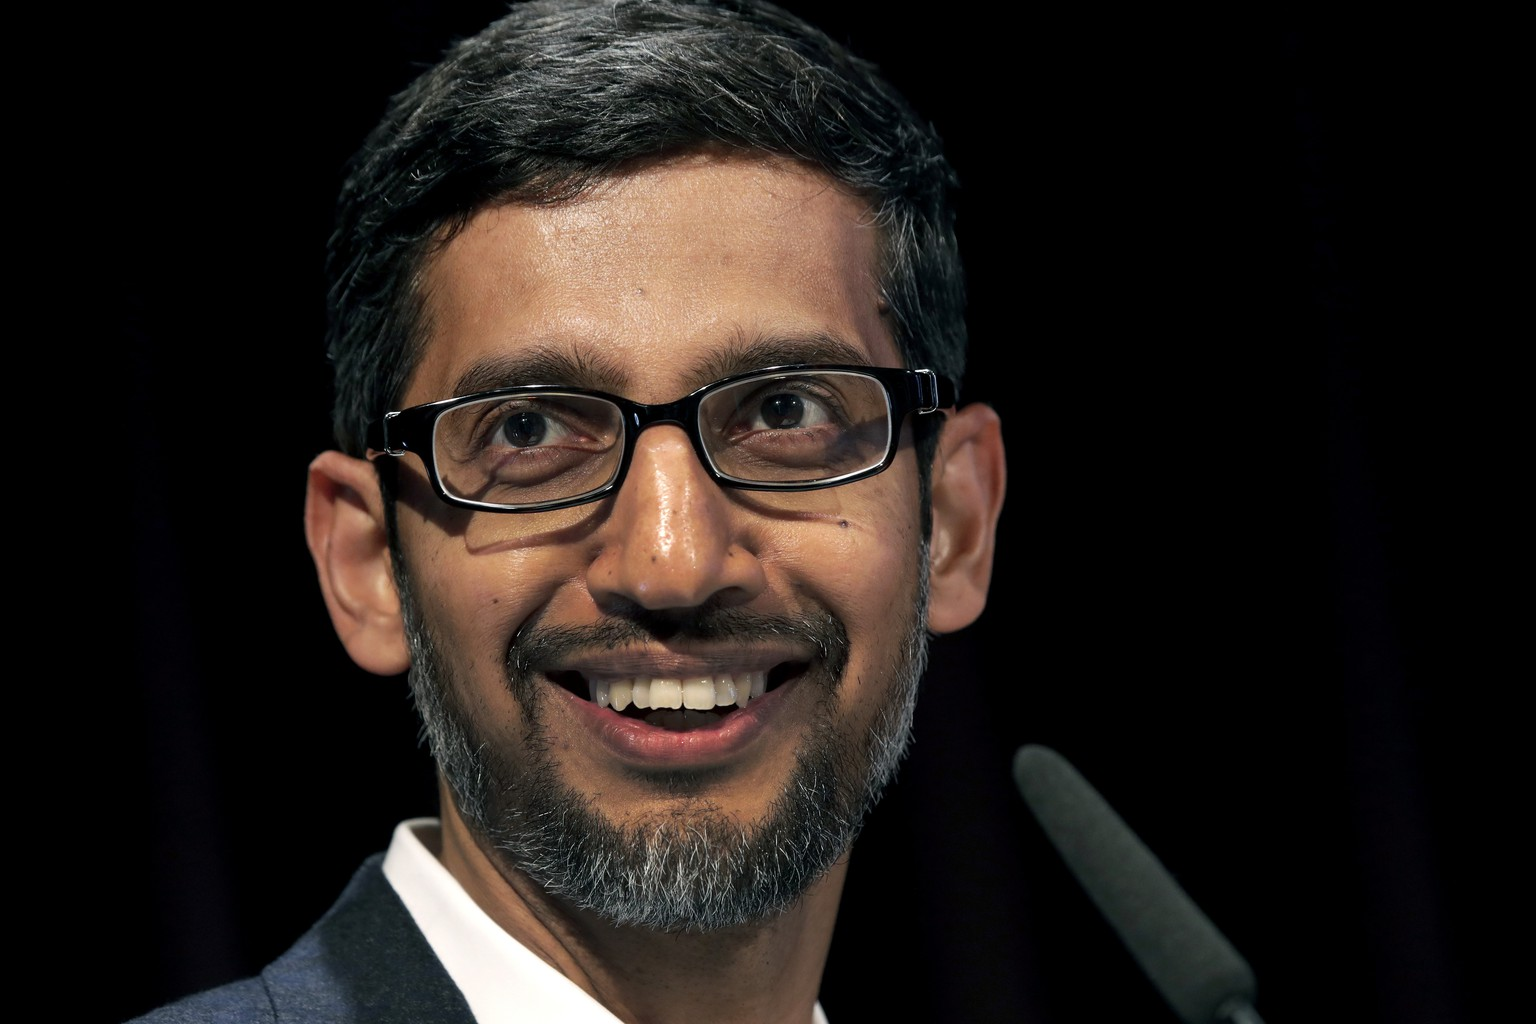 FILE - In this Tuesday, Jan. 22, 2019, file photo, Sundar Pichai, CEO of Google, speaks during a statement as part of the opening of a new Google office in Berlin. Google is committing to a White House initiative designed to get private companies to expand job training for American workers. (AP Photo/Michael Sohn, File)